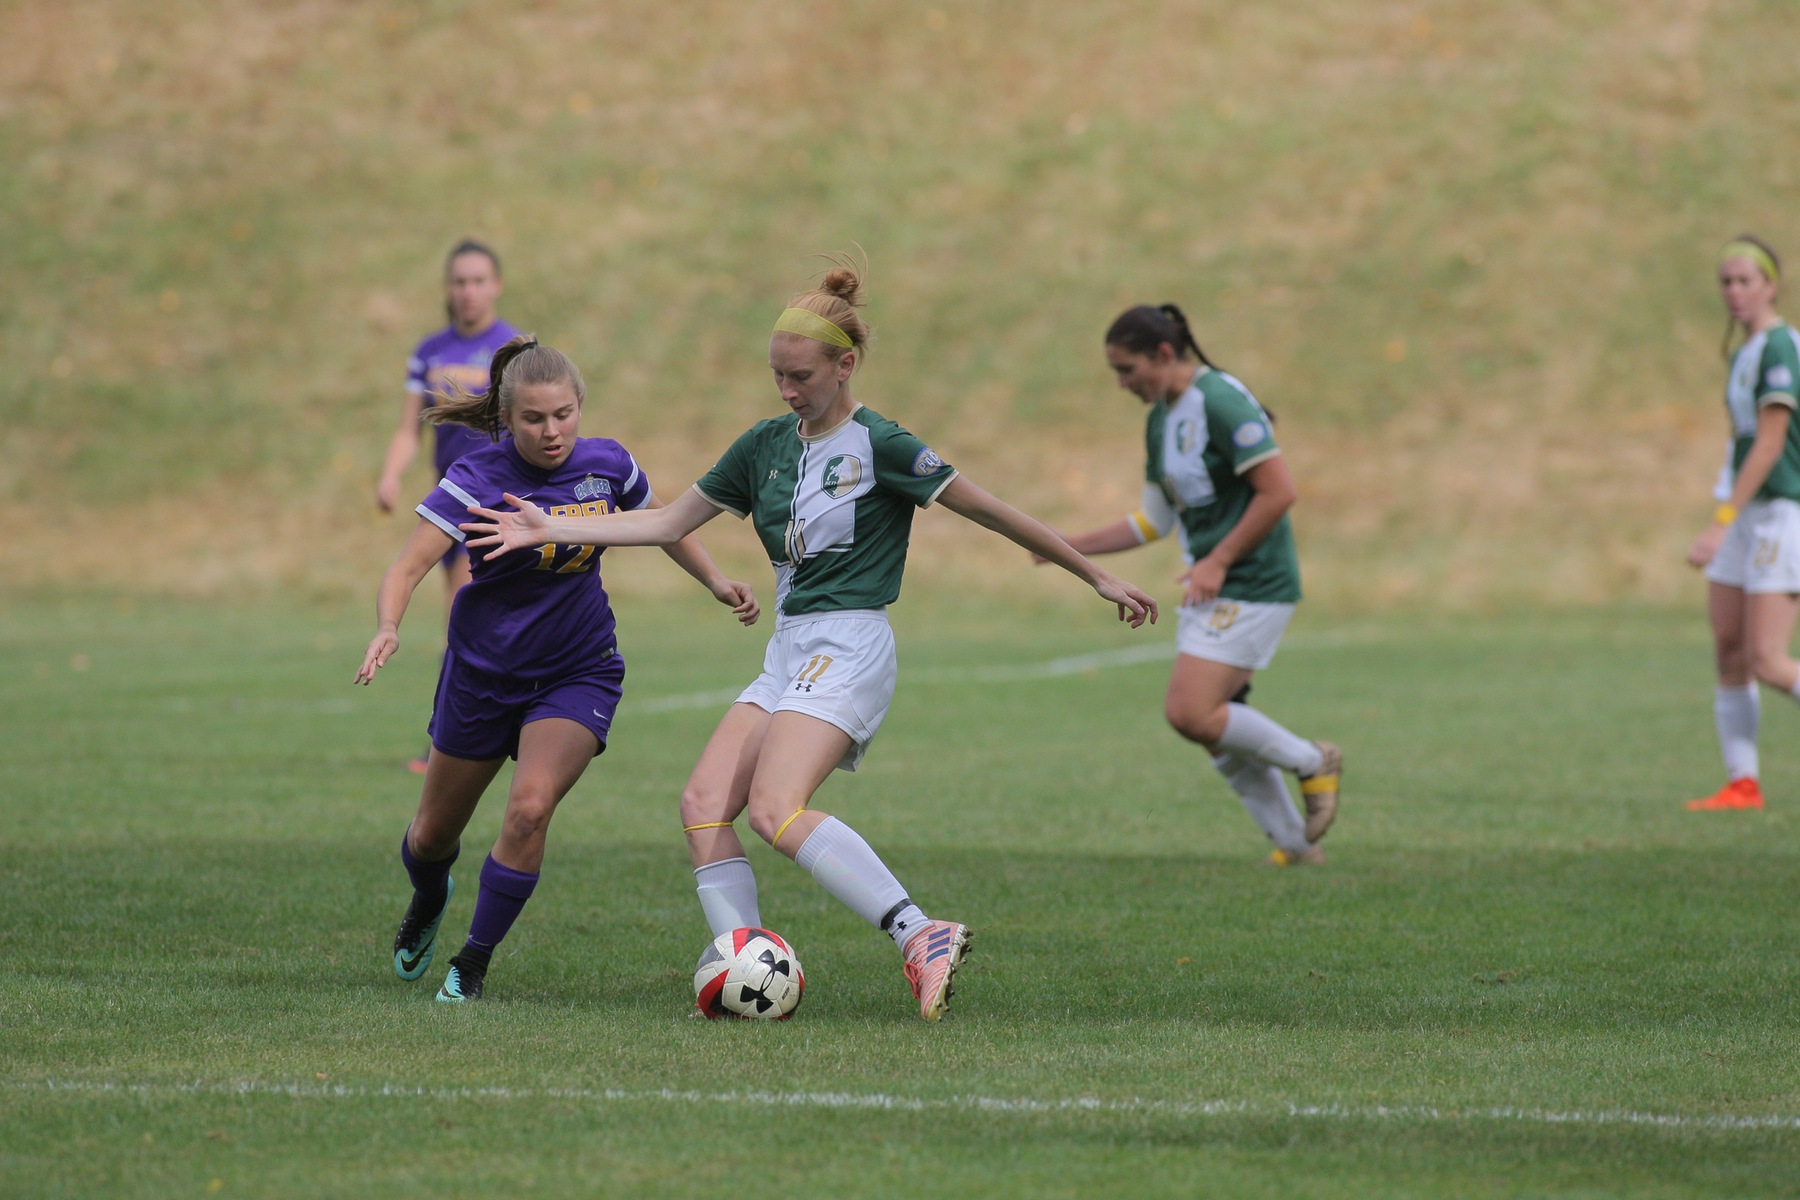 Women's Soccer Lead Slips as the Bison Falls to Marietta